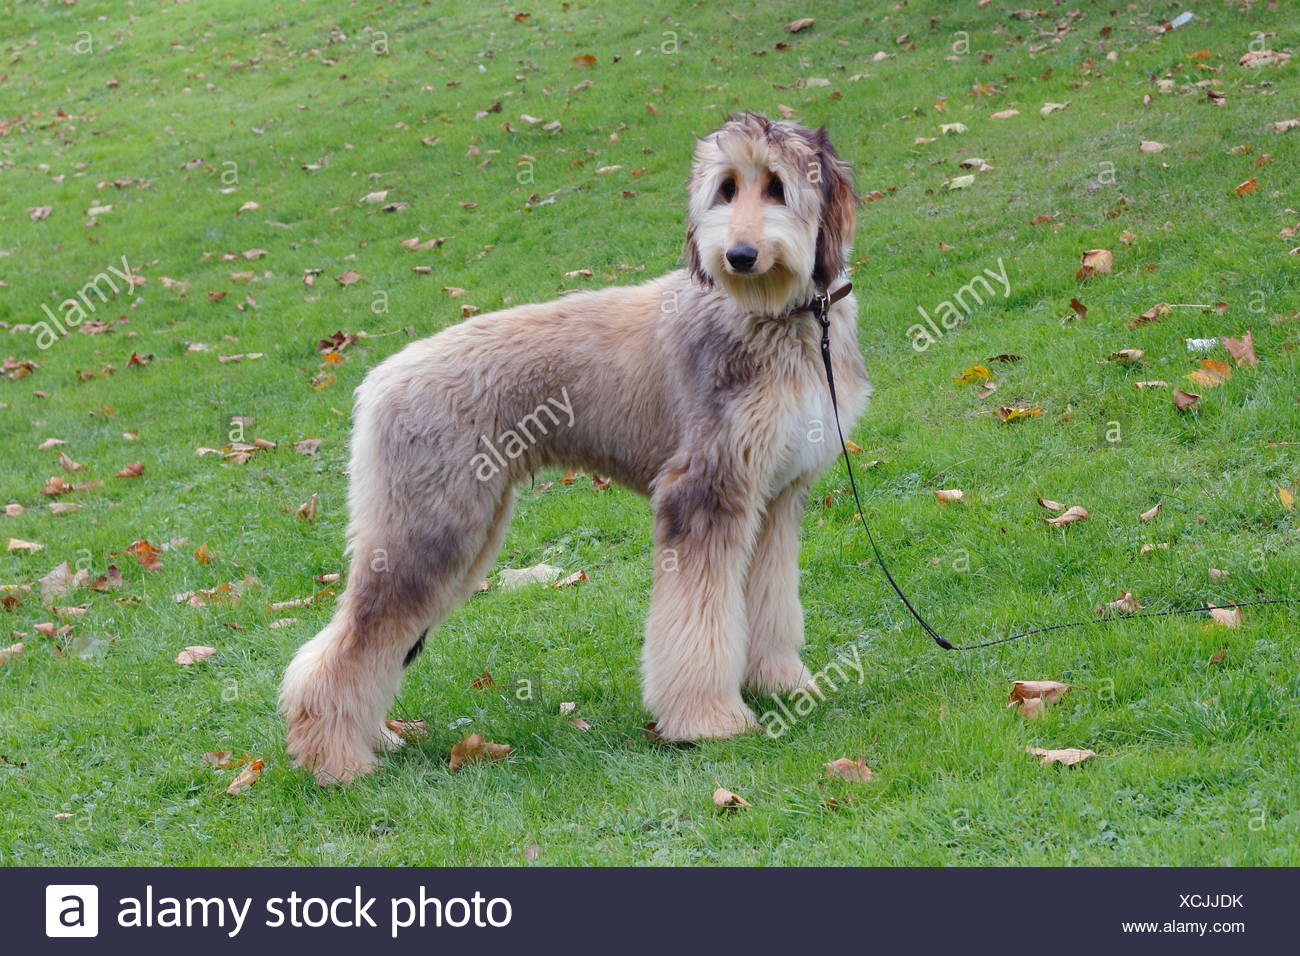 Afghan hound dog standing in a meadow, Germany Stock Photo